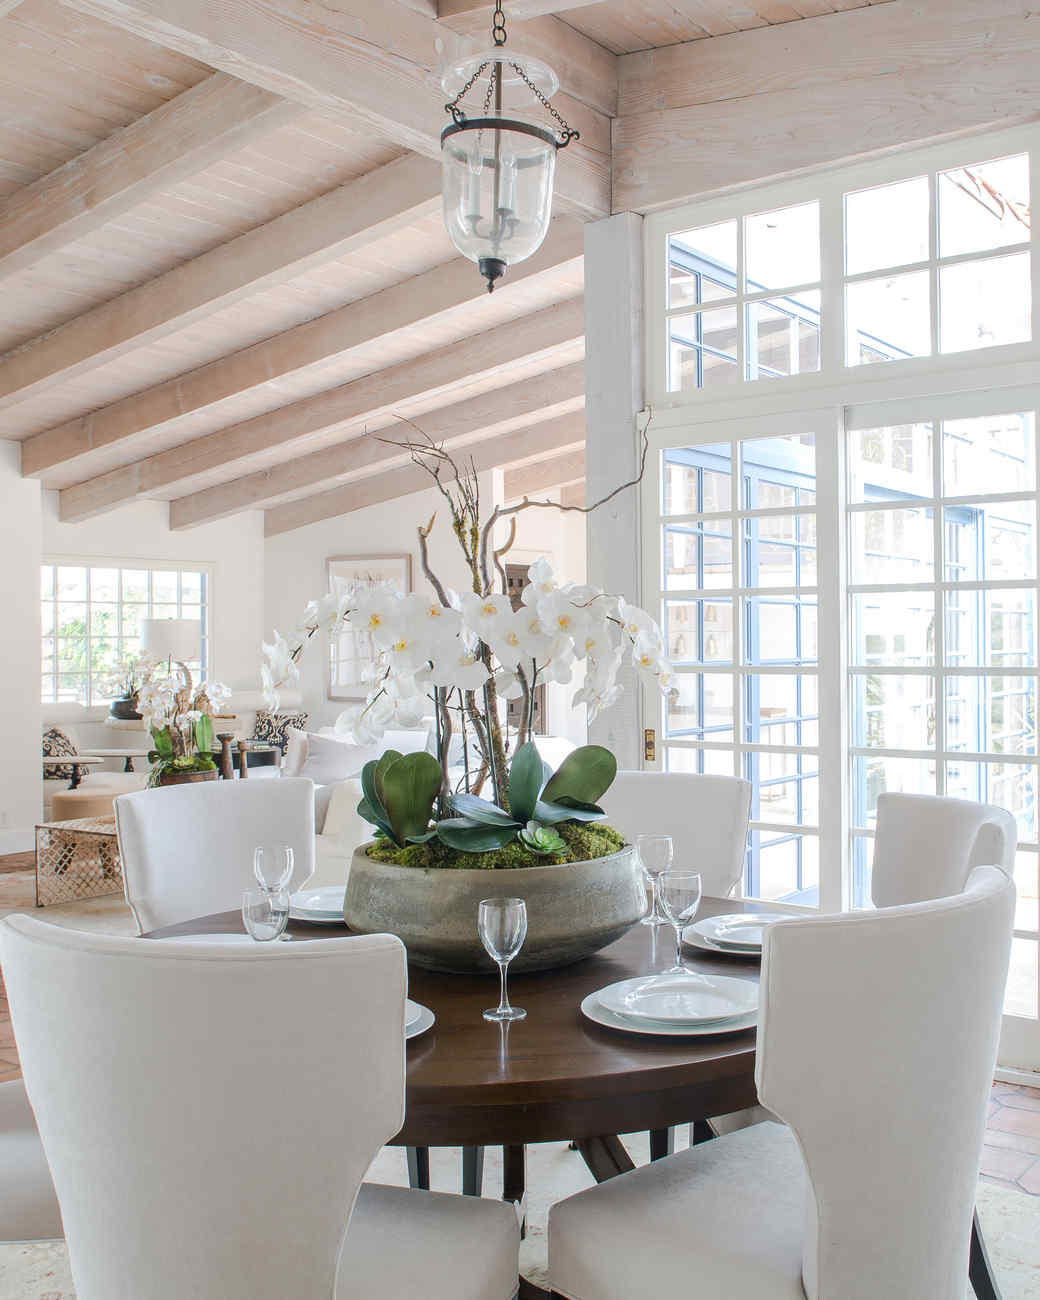 Home Design Ideas Pictures: Feast Your Eyes: Gorgeous Dining Room Decorating Ideas